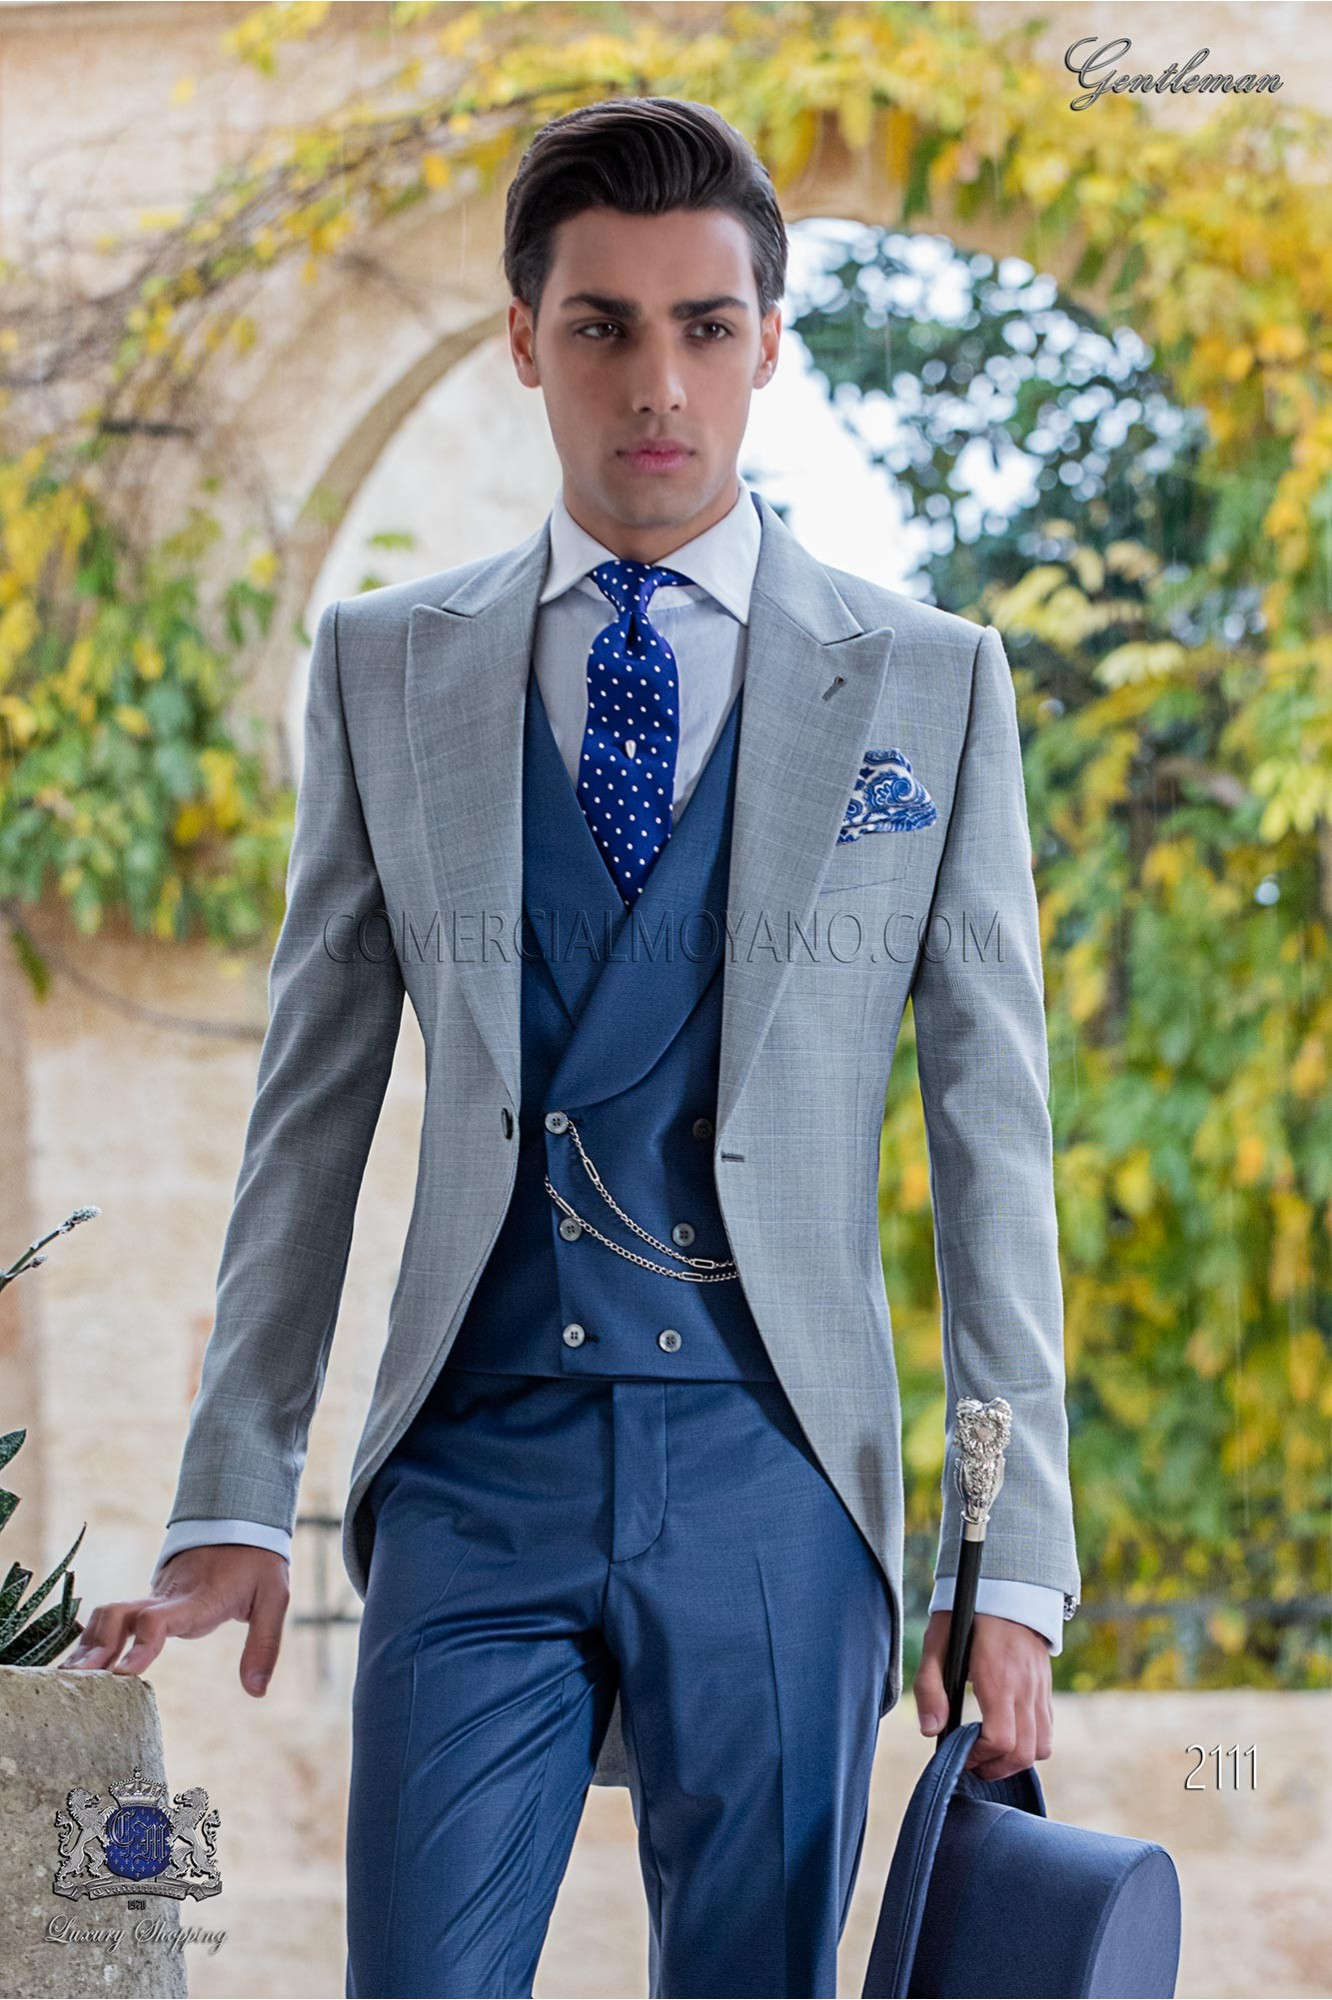 Bespoke morning suit Prince of Wales light grey and blue